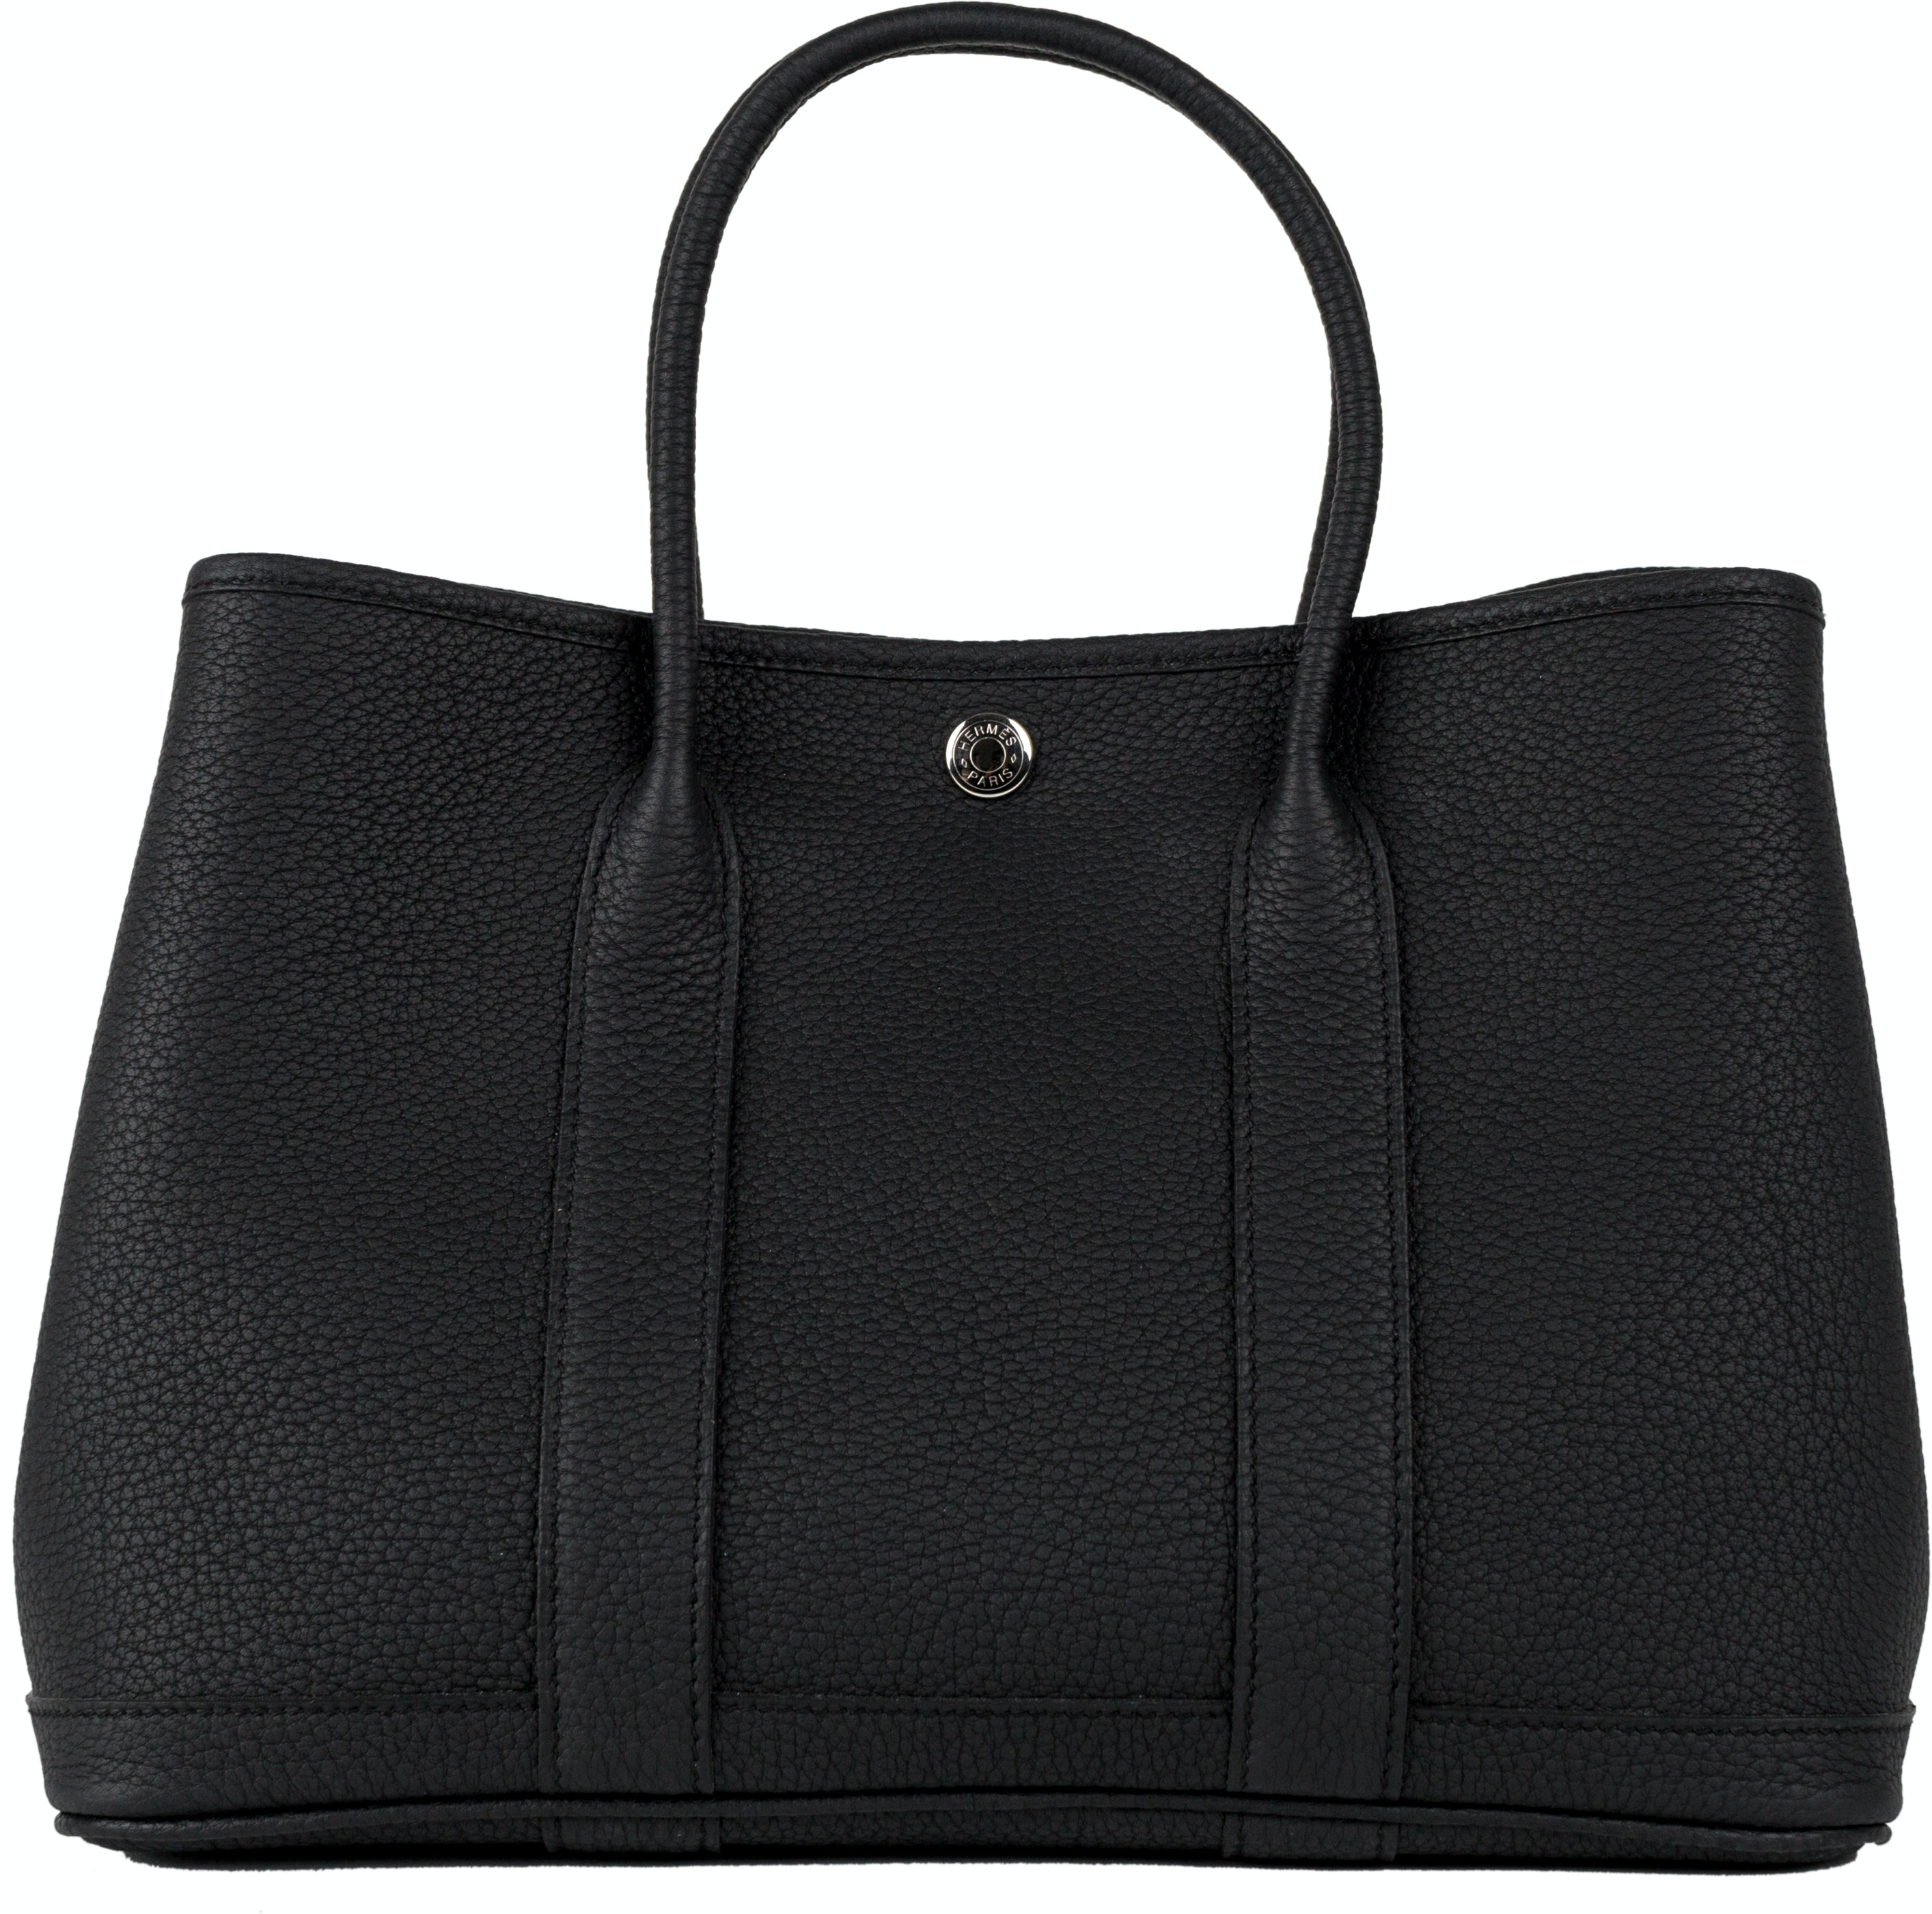 garden party hermes. Hermes Garden Party Tote Negonda TPM Black -